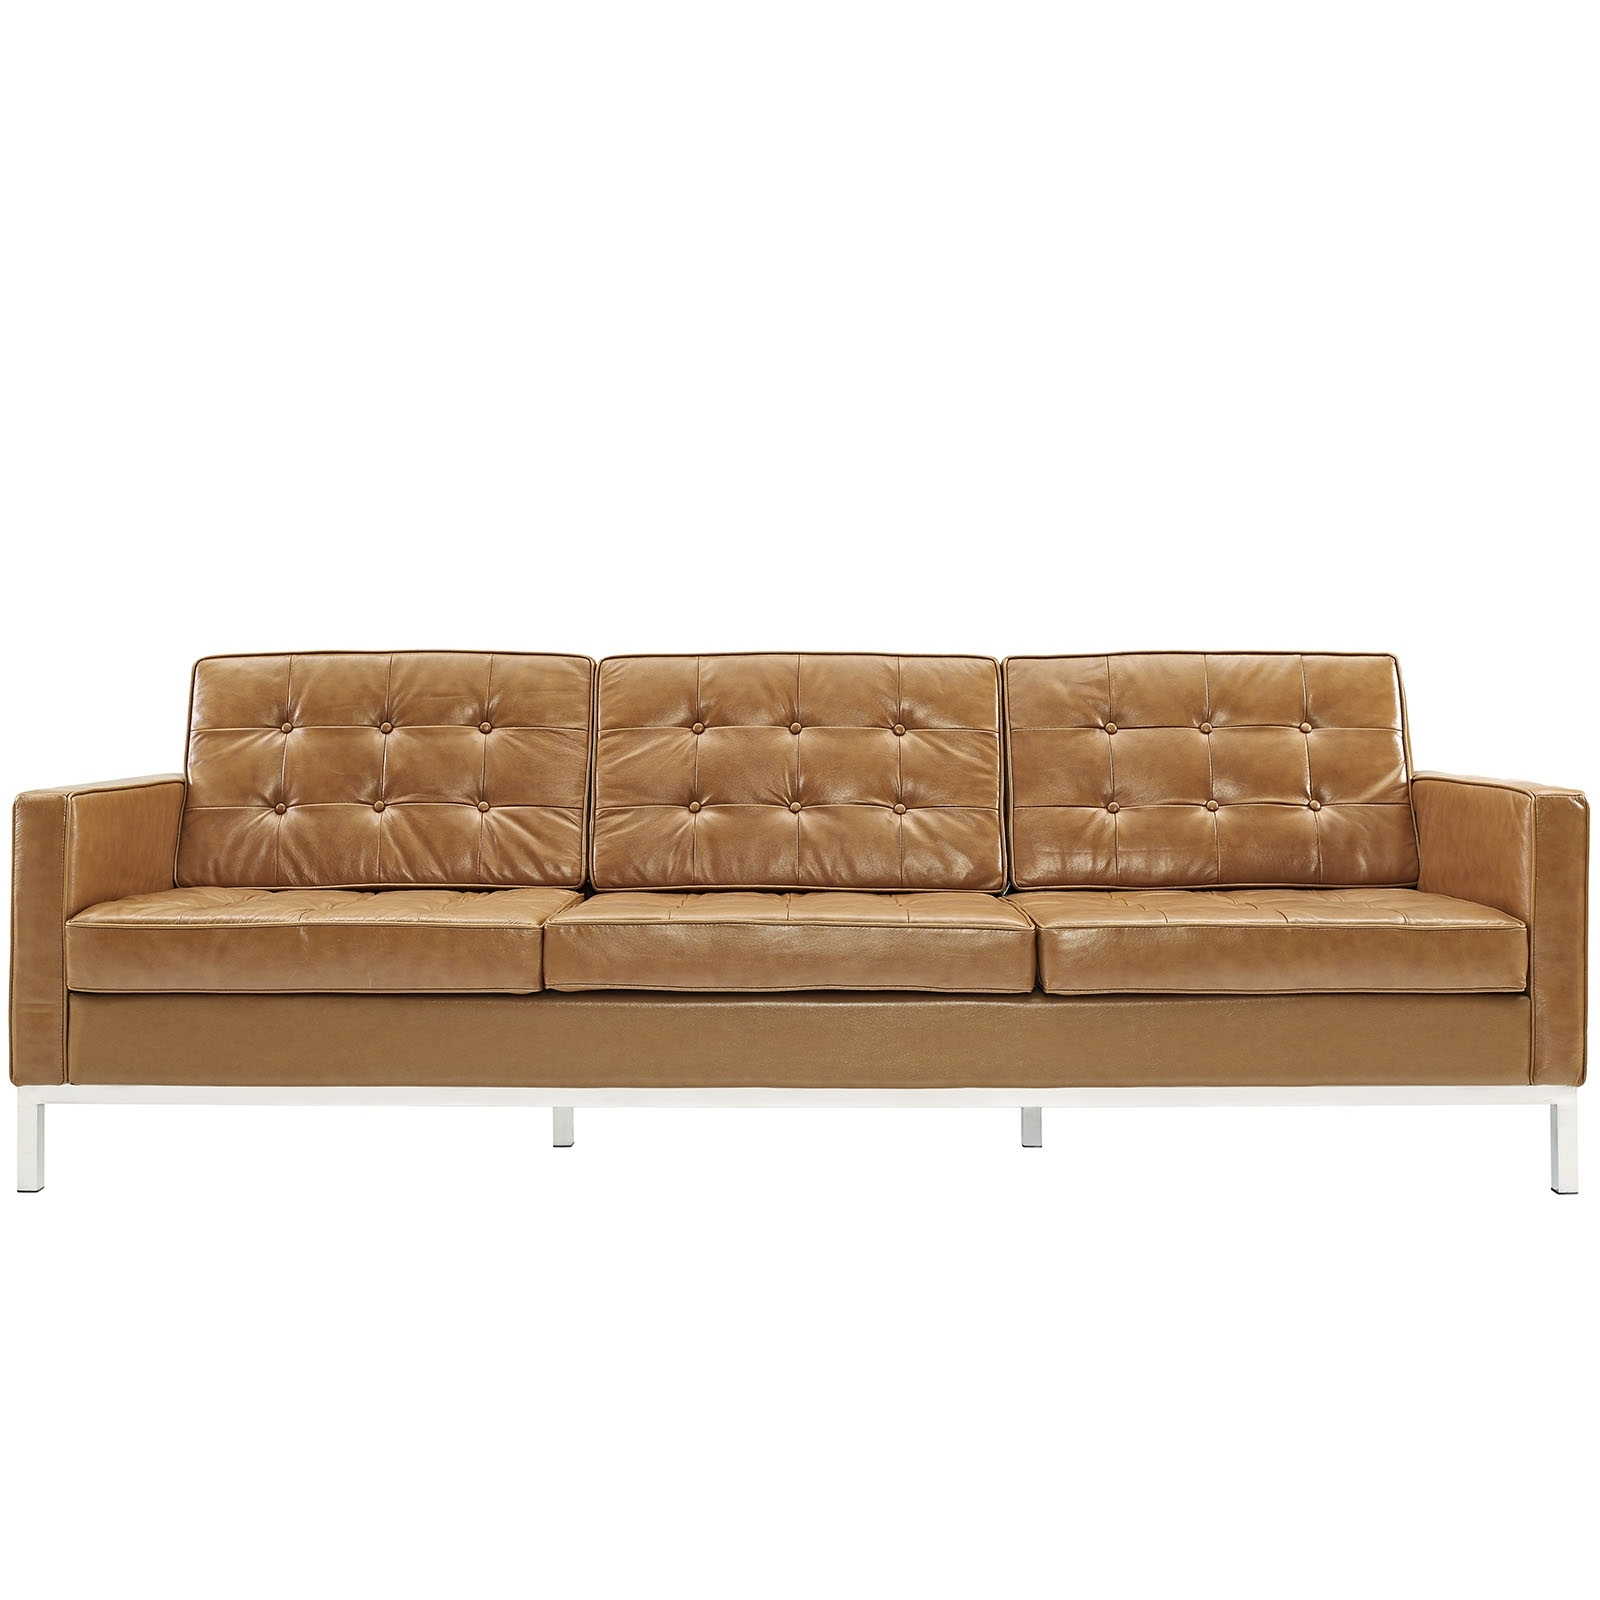 Florence Knoll Style Sofa Couch – Leather Intended For Well Known Florence Knoll Style Sofas (View 15 of 20)